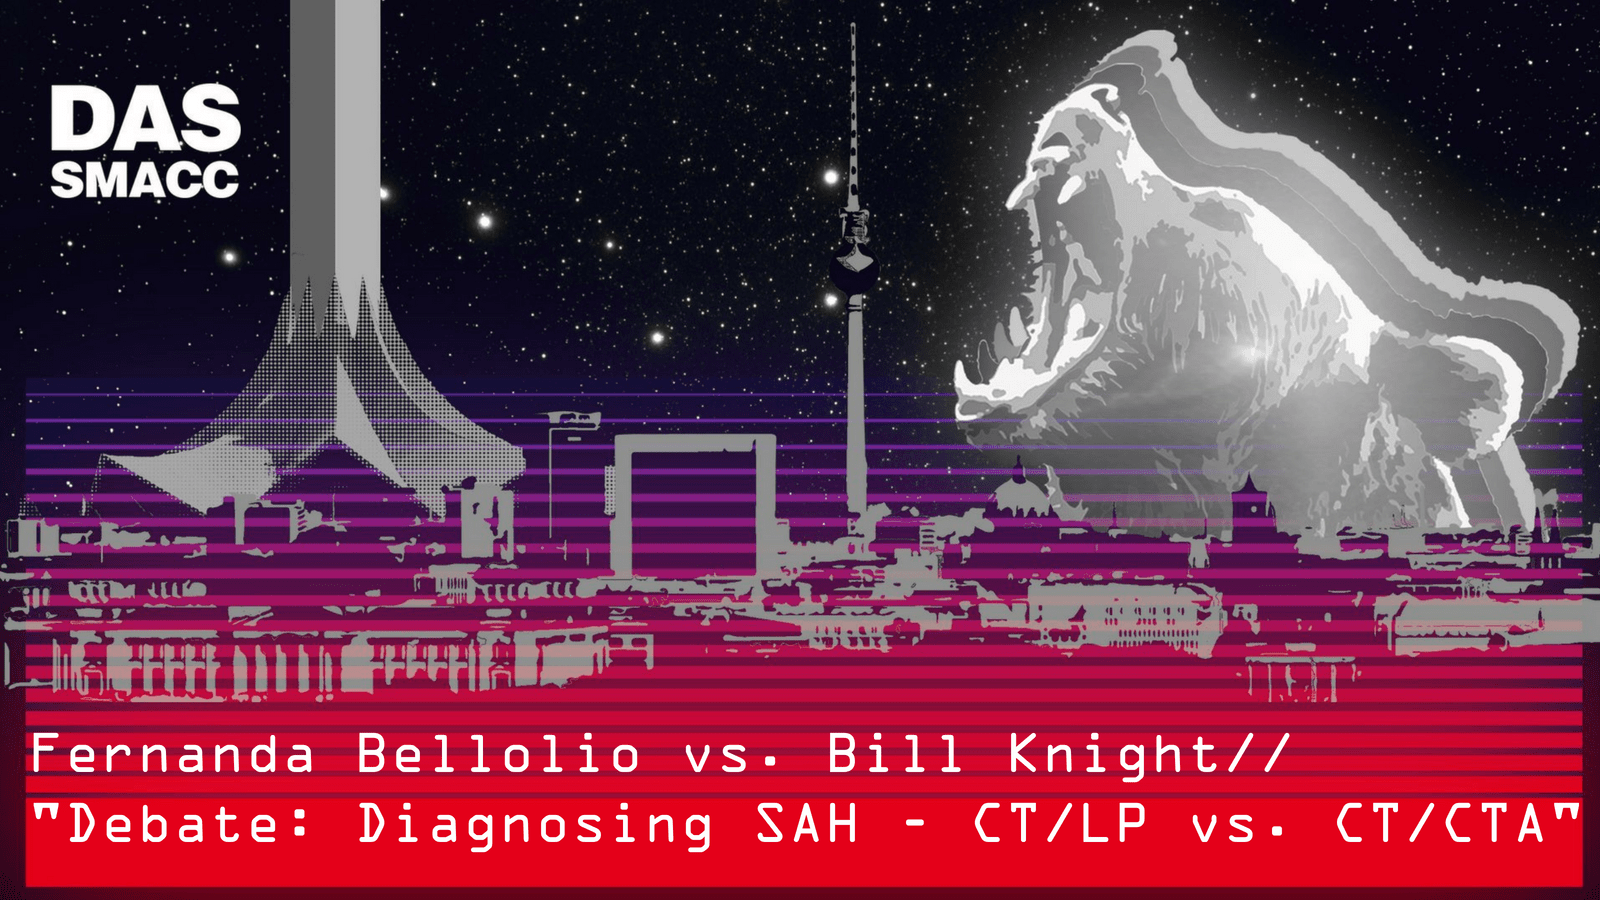 Diagnosing SAH - CT/LP vs. CT/CTA. Fernanda Bellolio vs. Bill Knight